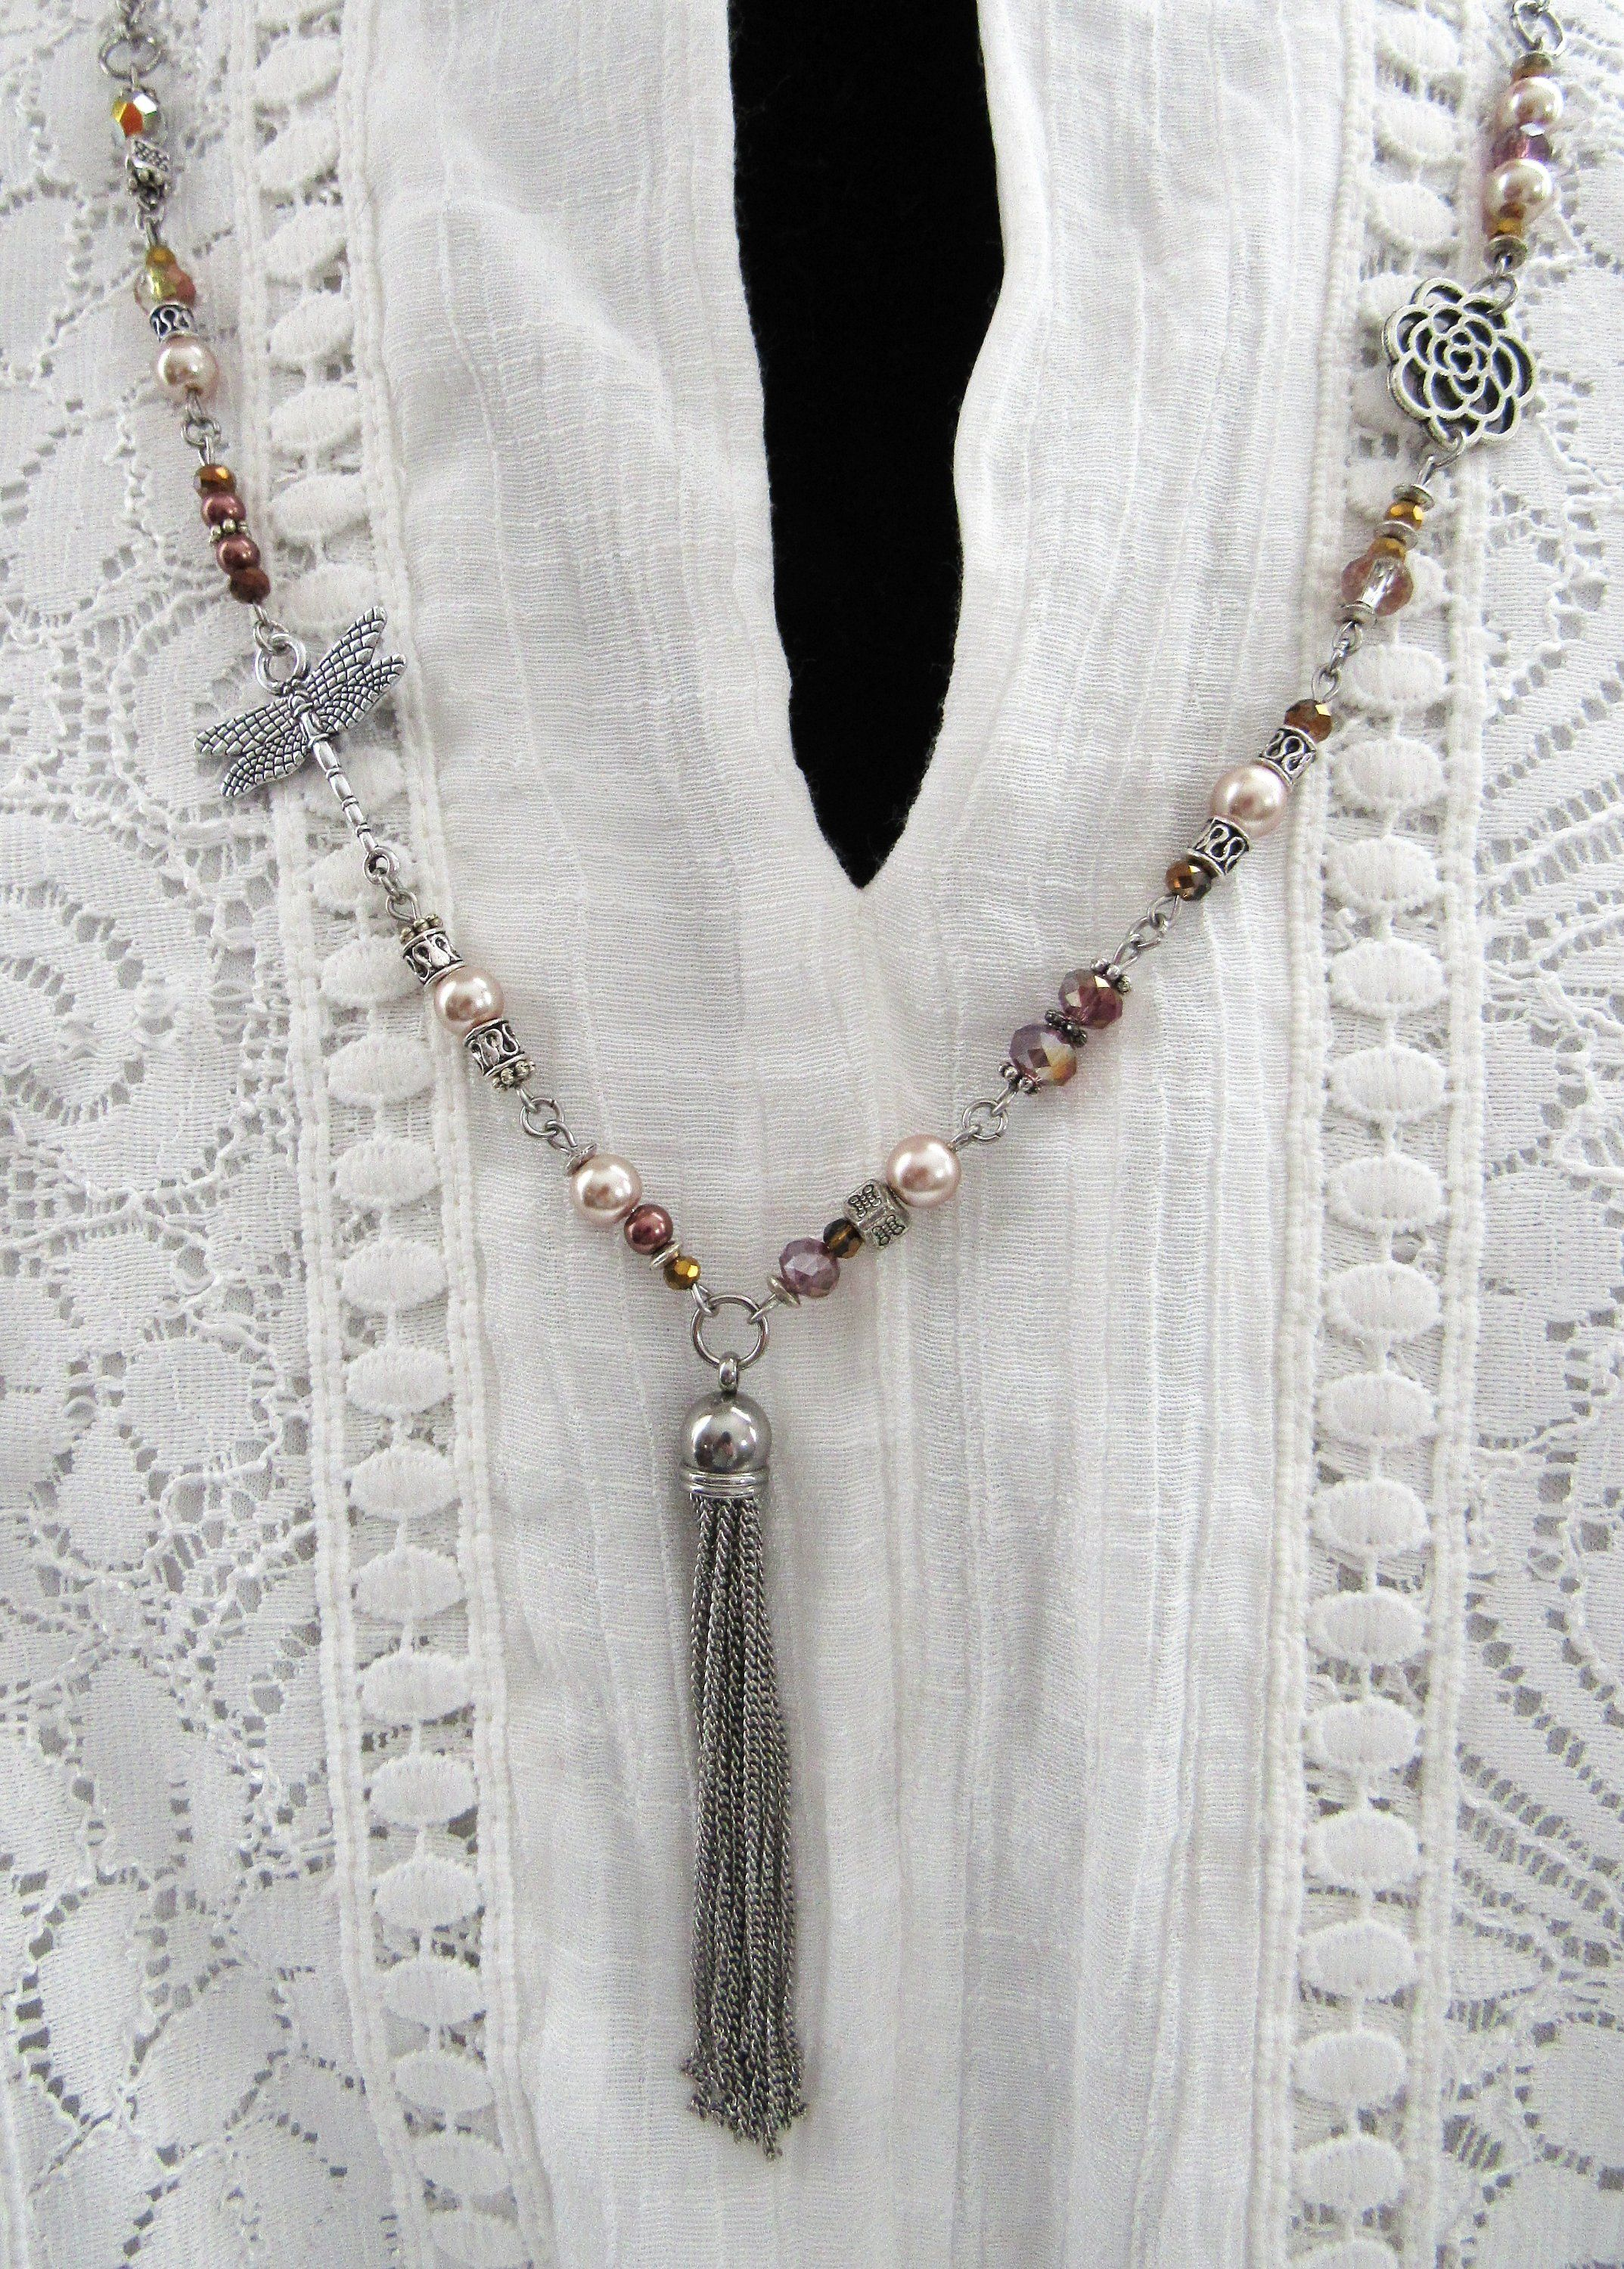 Dragonfly beaded tassel necklace long necklace